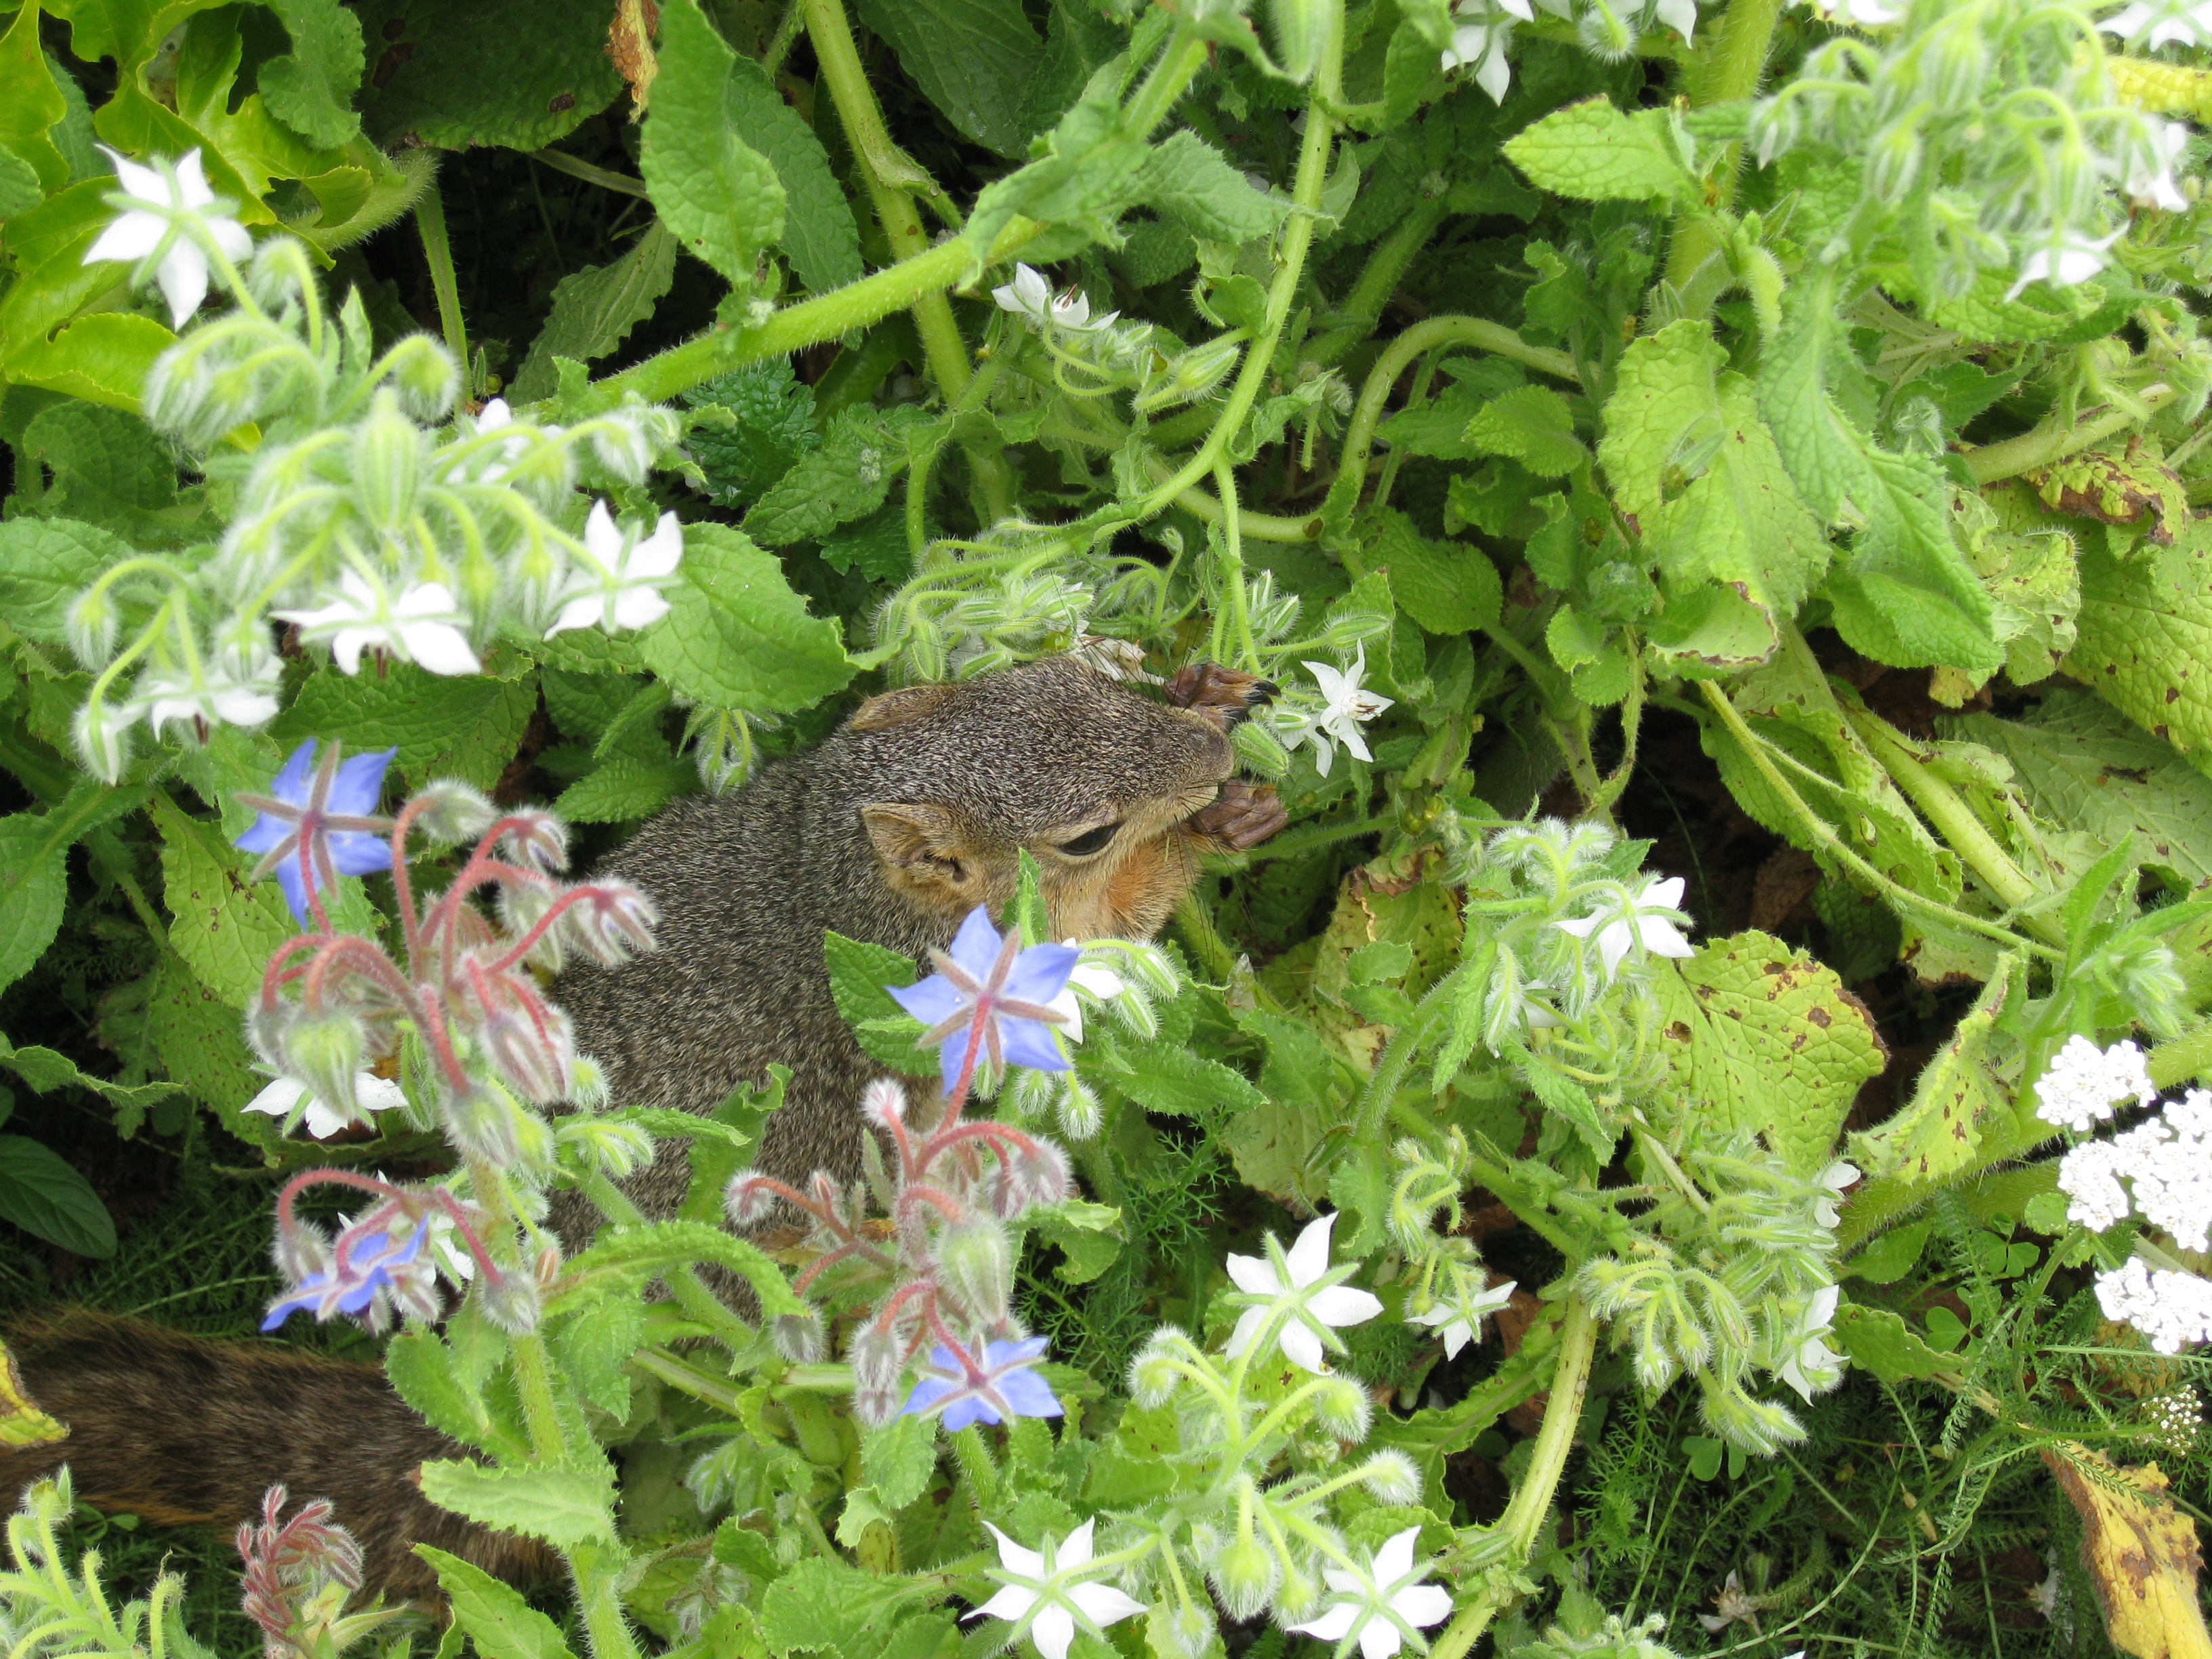 Who knew squirrels loved borage so much? This one couldn't get enough of the blossoms.